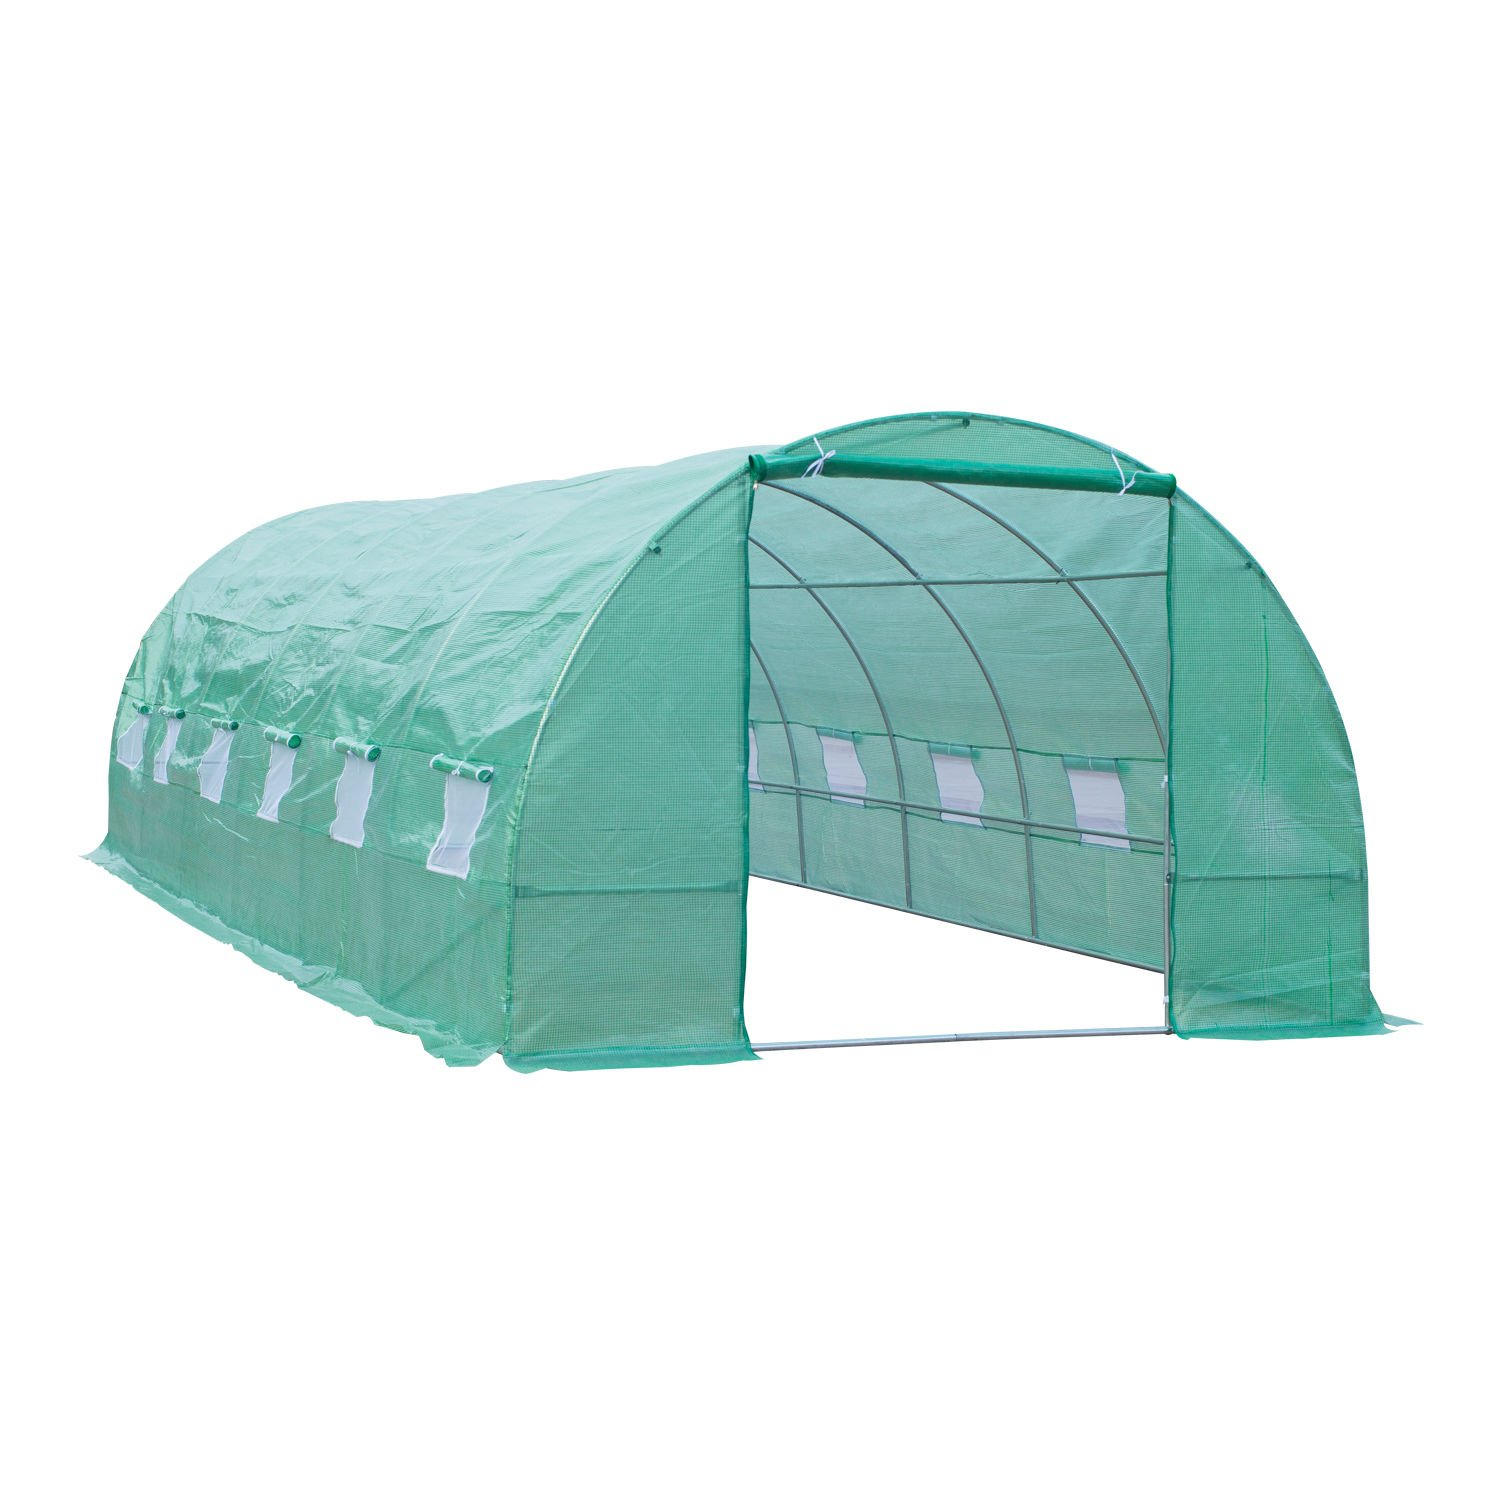 Outsunny 26' x 10' x 7' Portable Walk-in Garden Greenhouse - Deep Green by Outsunny